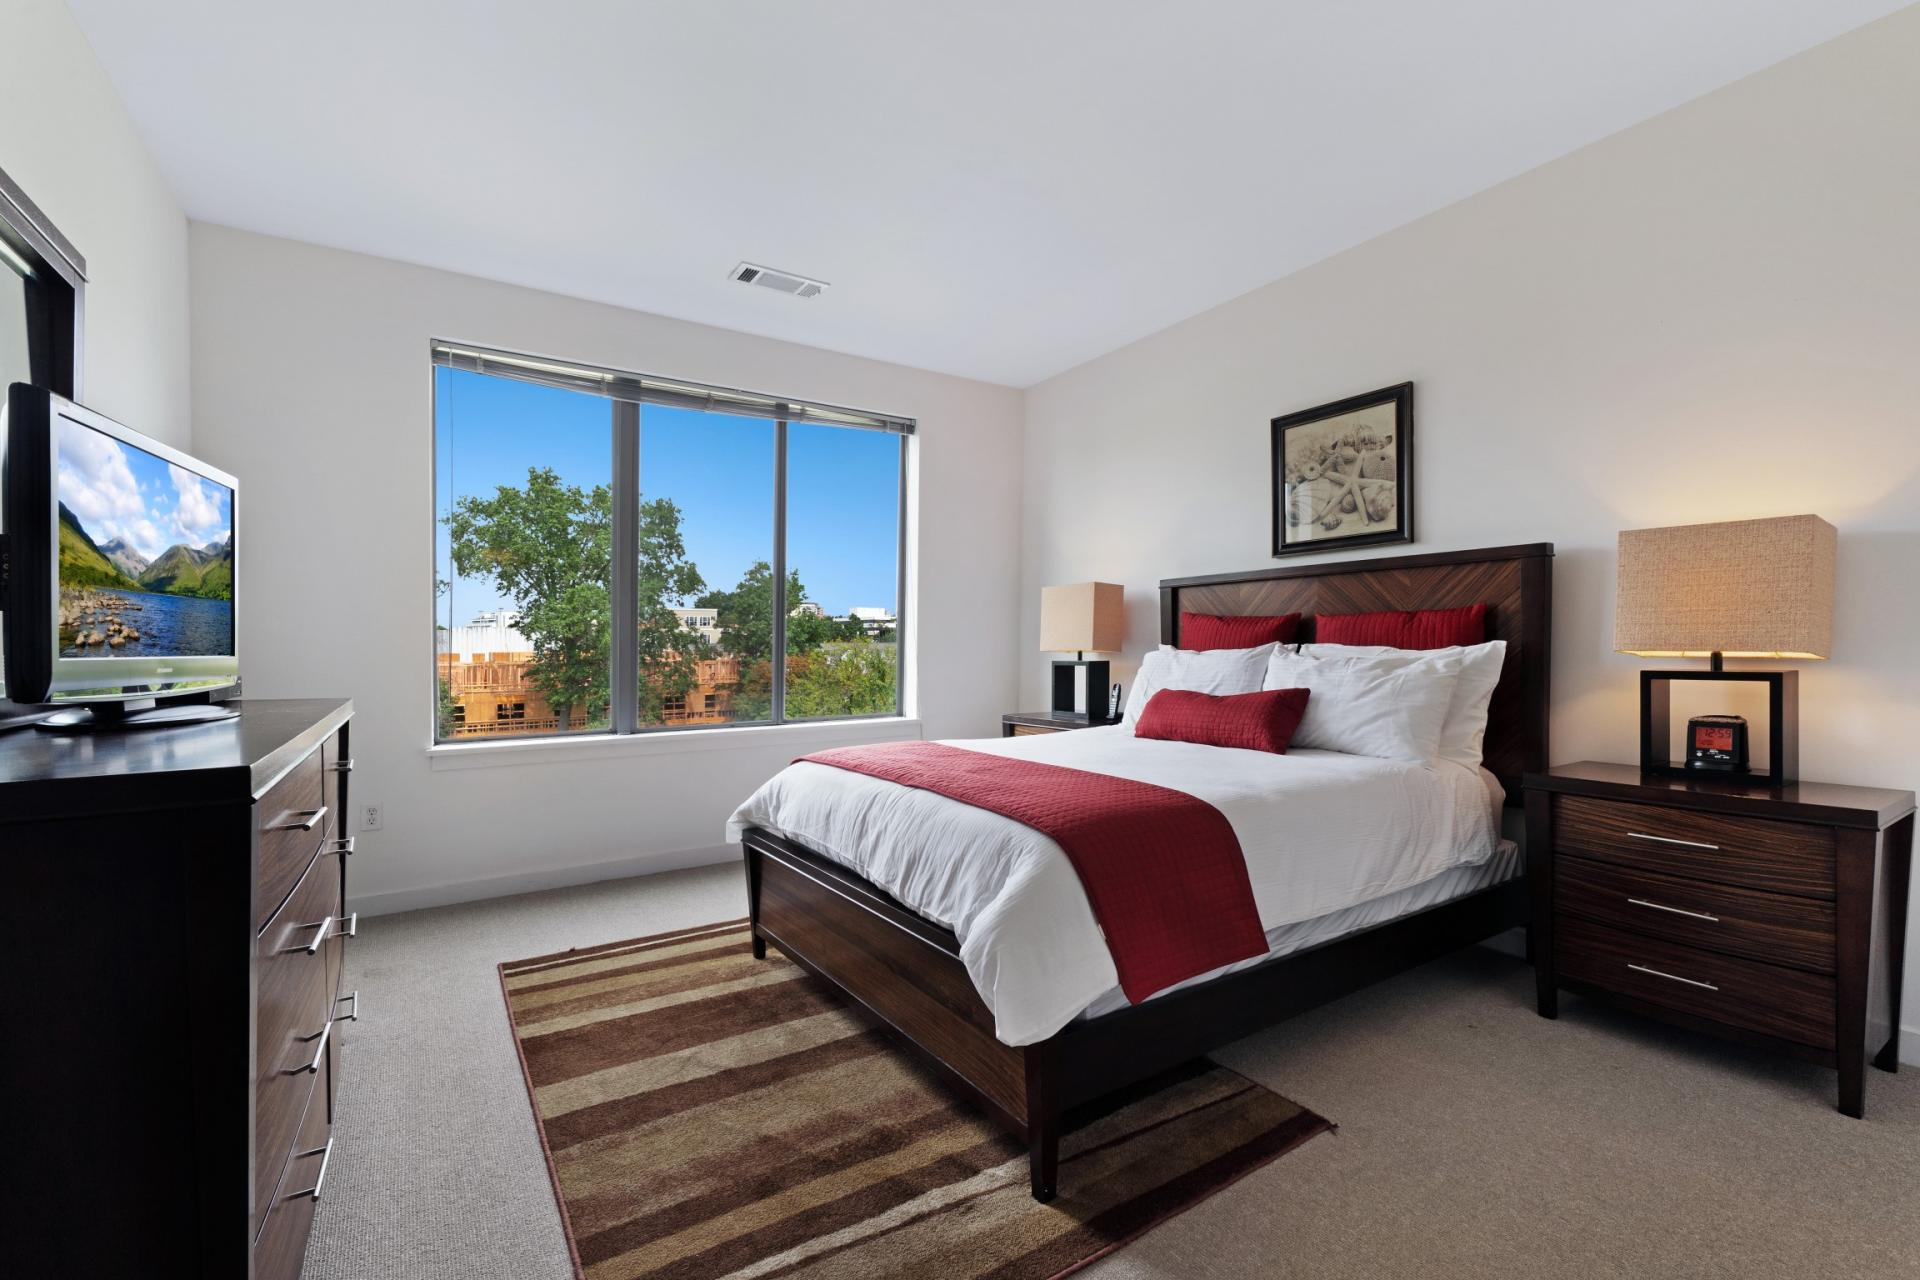 Bedroom at Stamford Blvd Apartments, Centre, Stamford